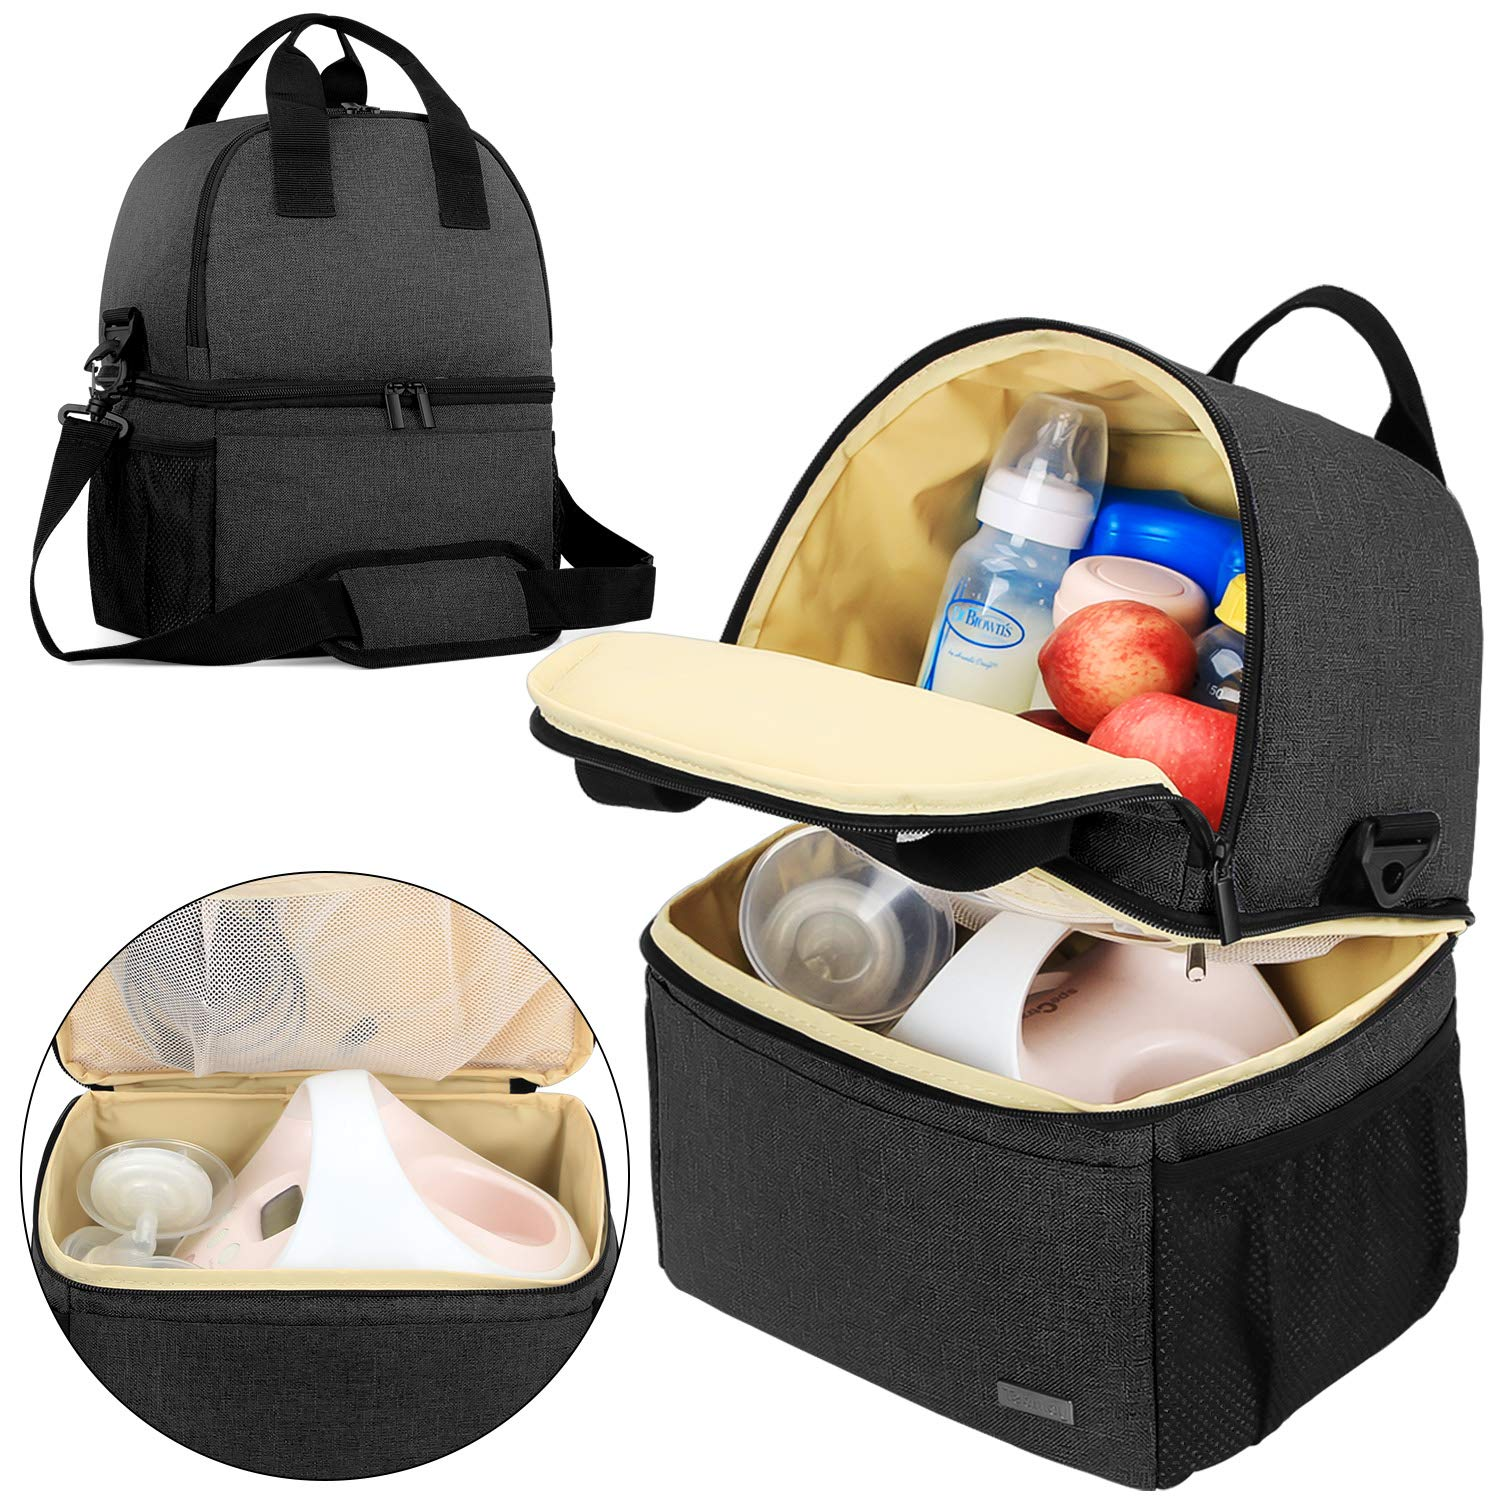 Teamoy Breast Pump Bag Tote with Cooler Compartment for Breast Pump, Cooler Bag, Breast Milk Bottles and More, Double Layer Pumping Bag for Working Moms, Black(Bag Only) by Teamoy